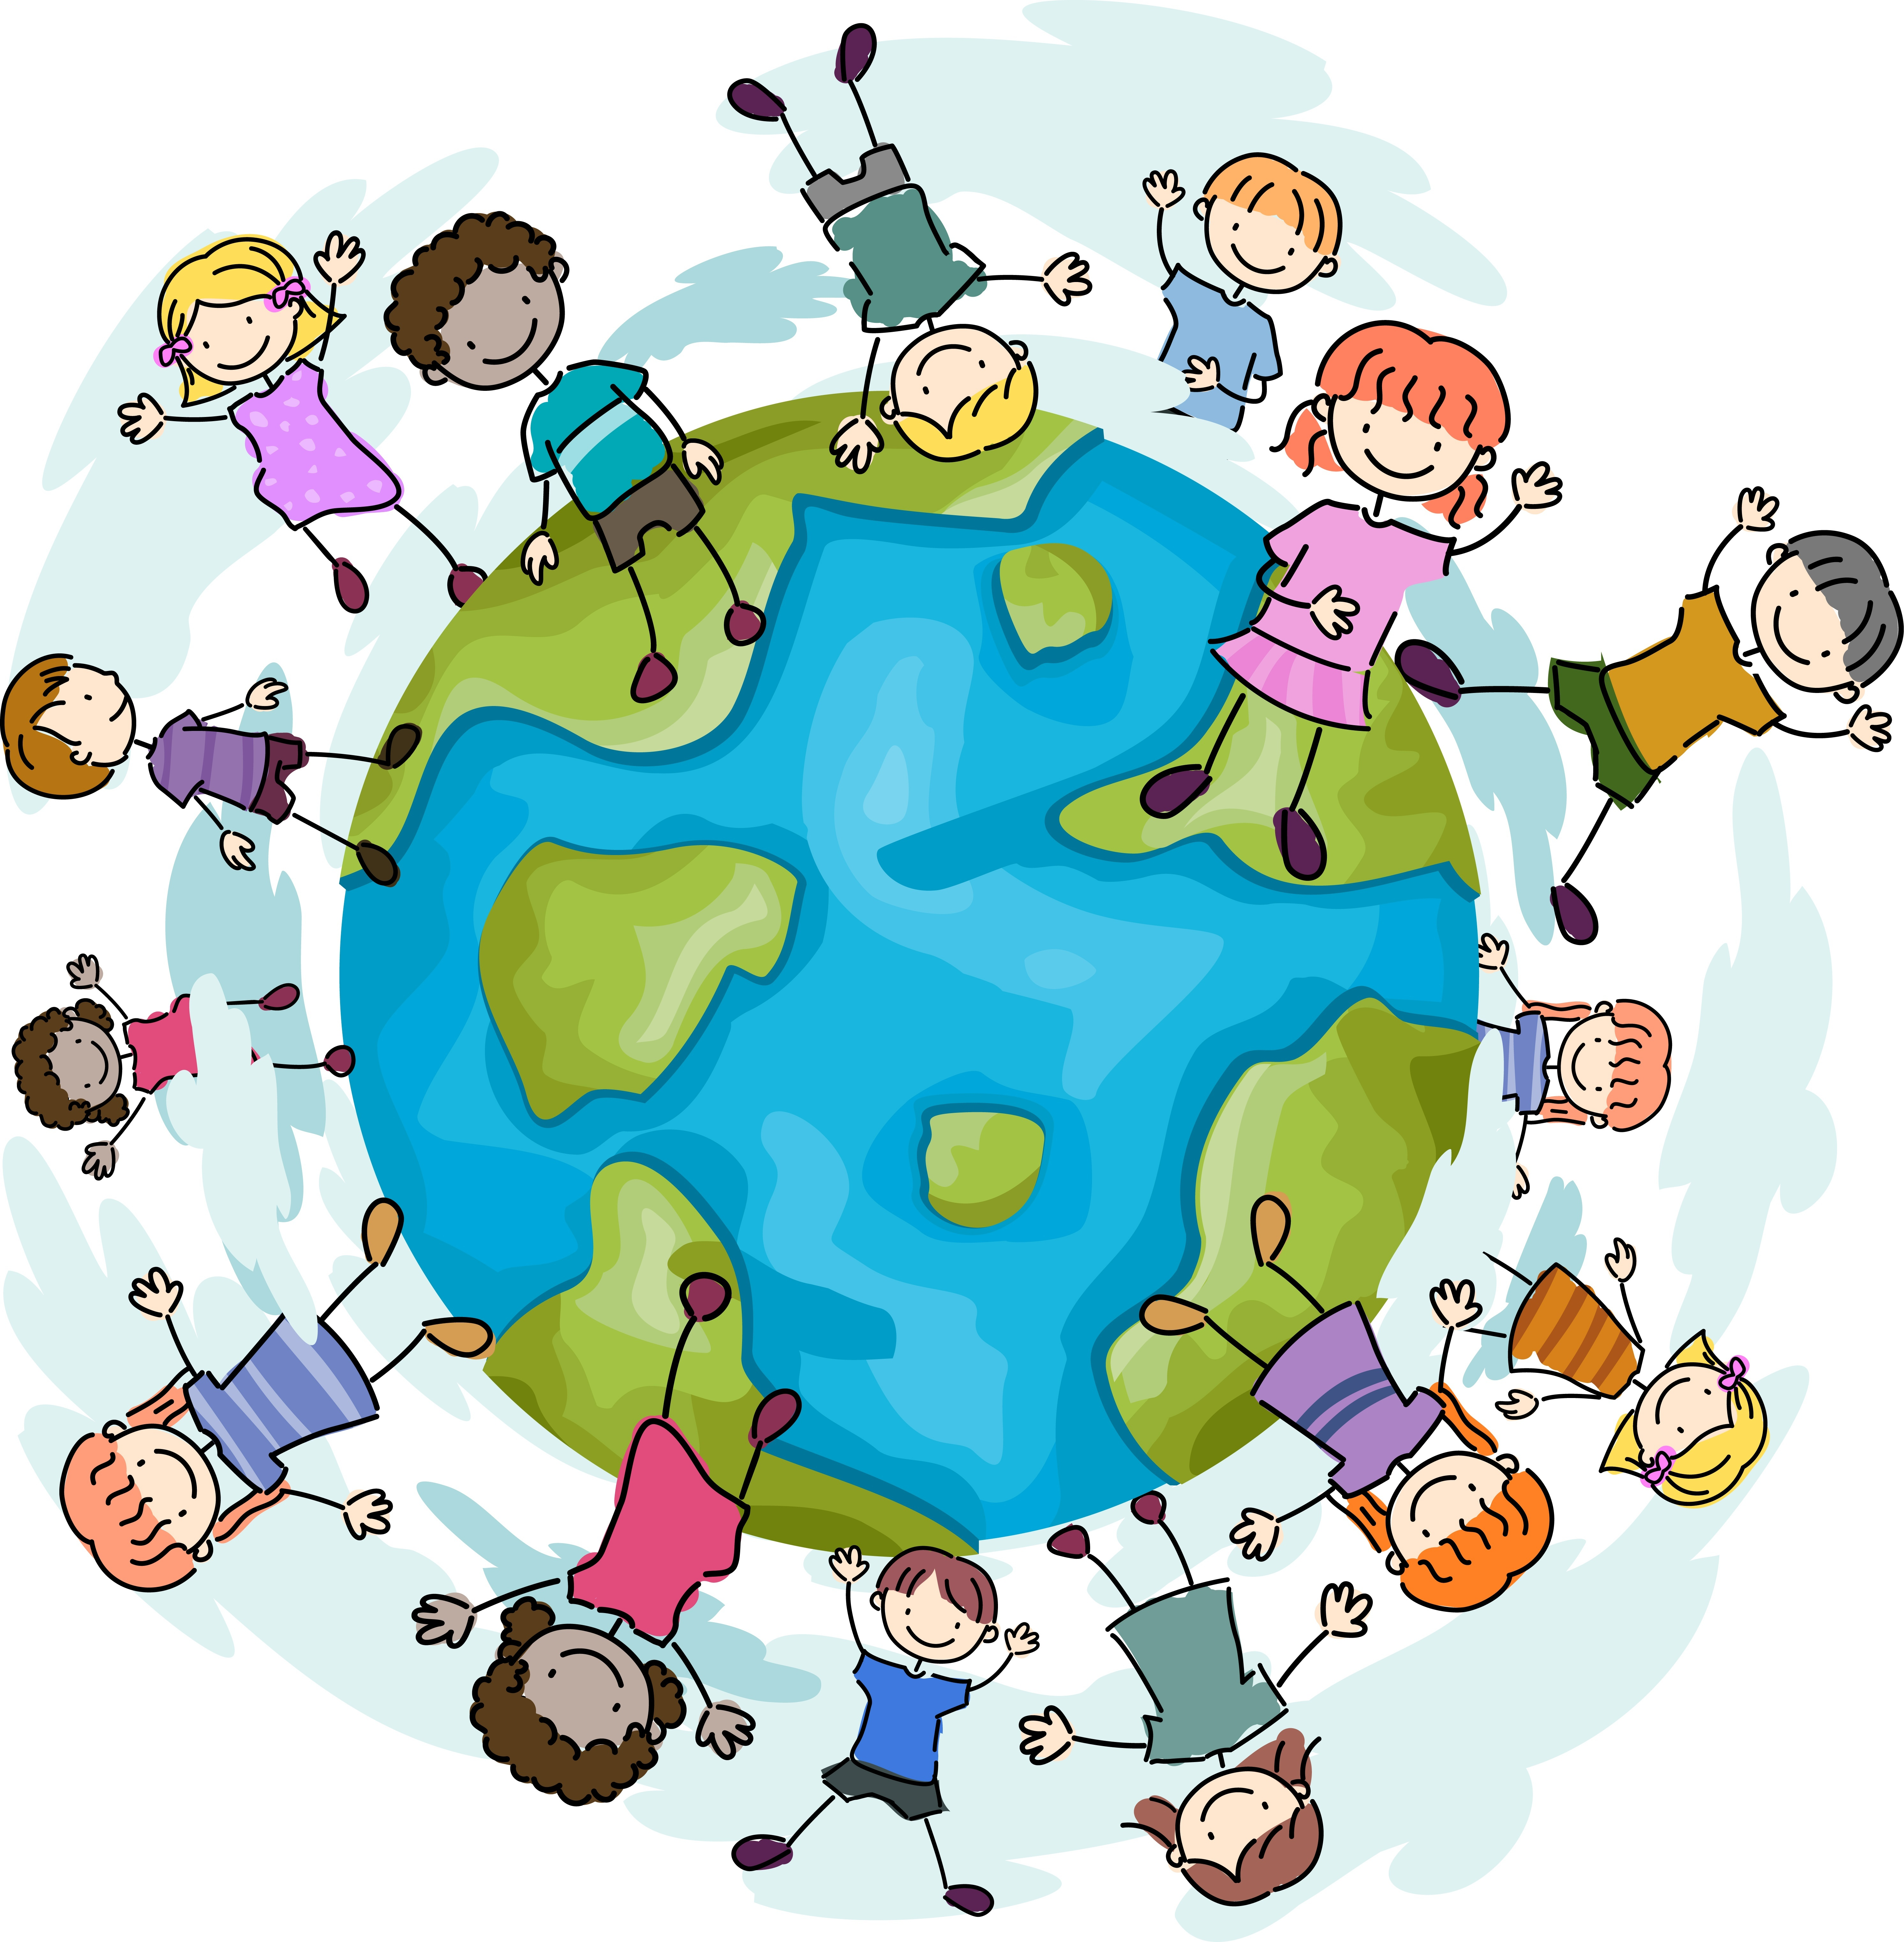 Cartoon images of children jumping happily around a globe.